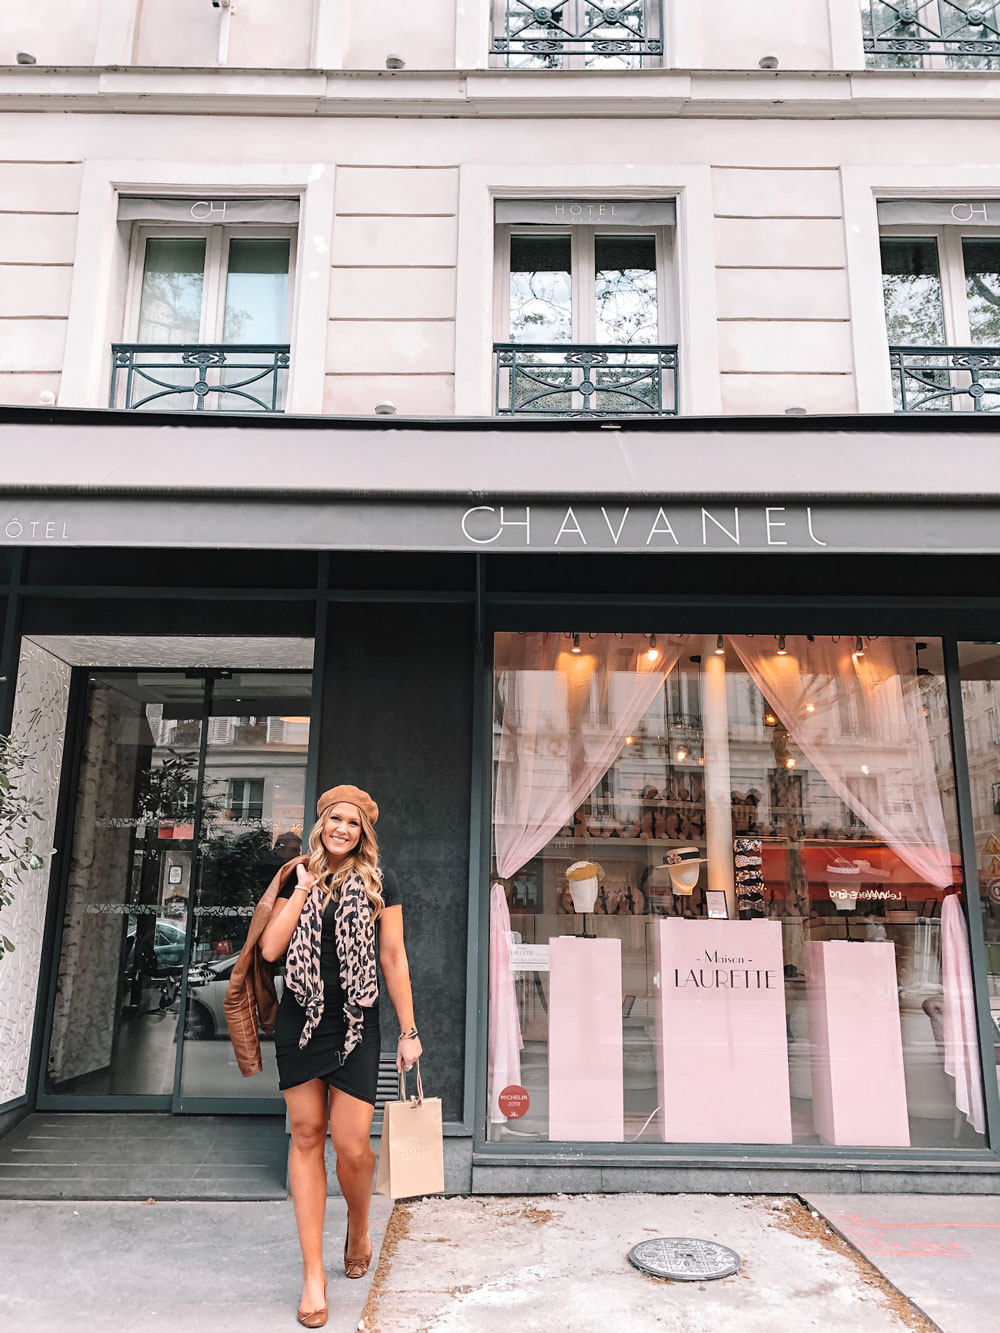 Hotel Chavanel is a beautiful boutique hotel in the 8th Arrondissement of Paris